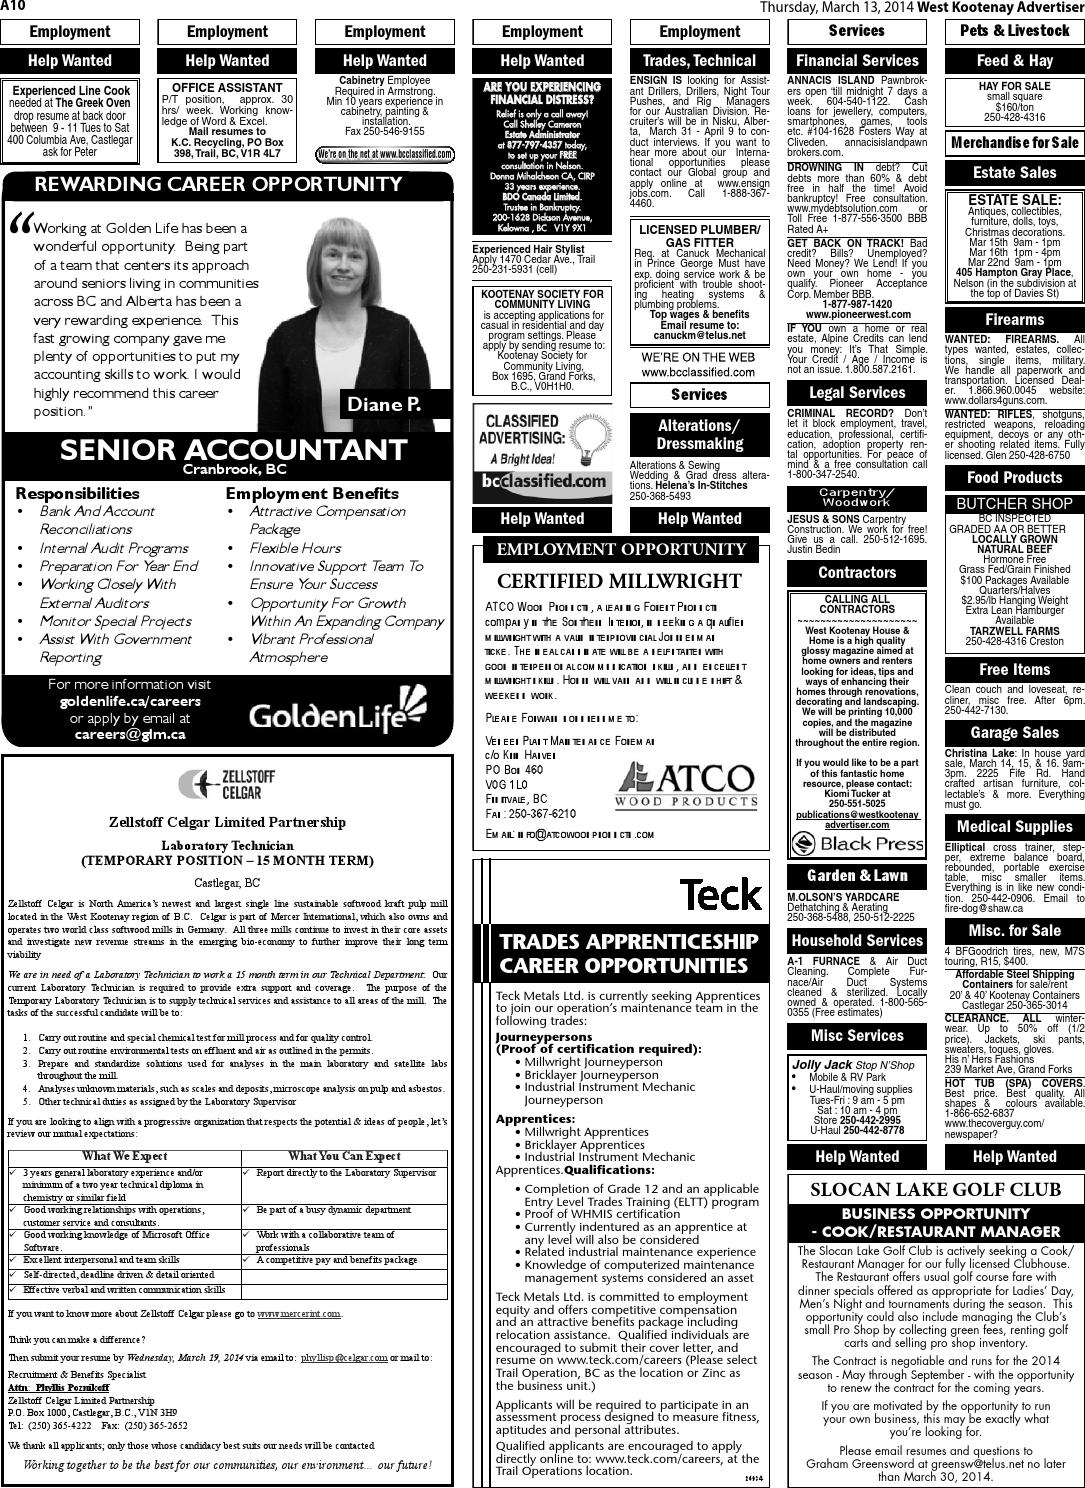 west kootenay advertiser, march 13, 2014 by black press - issuu